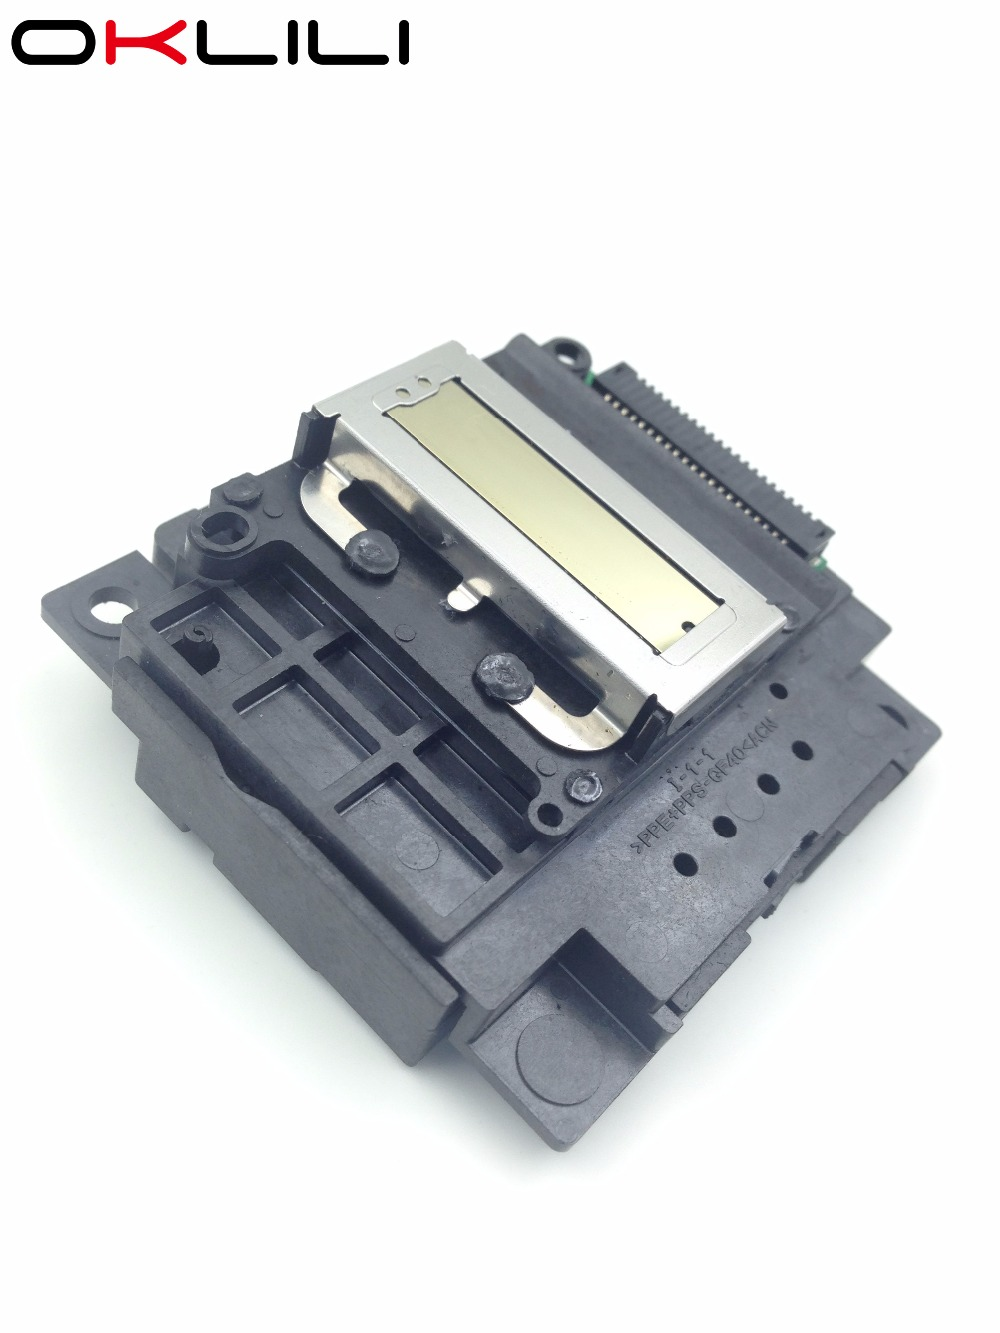 FA04000 FA04010 Printhead Print Head for Epson XP-302 XP-303 XP-305 XP-306 XP-312 XP-313 XP-315 XP-322 XP-323 XP-402 XP-405 L110 full specialized dye ink ciss for eposn t1711 t1701 for epson xp 313 xp 413 xp 103 xp 203 xp 207 xp 303 xp 306 xp 403 xp 406